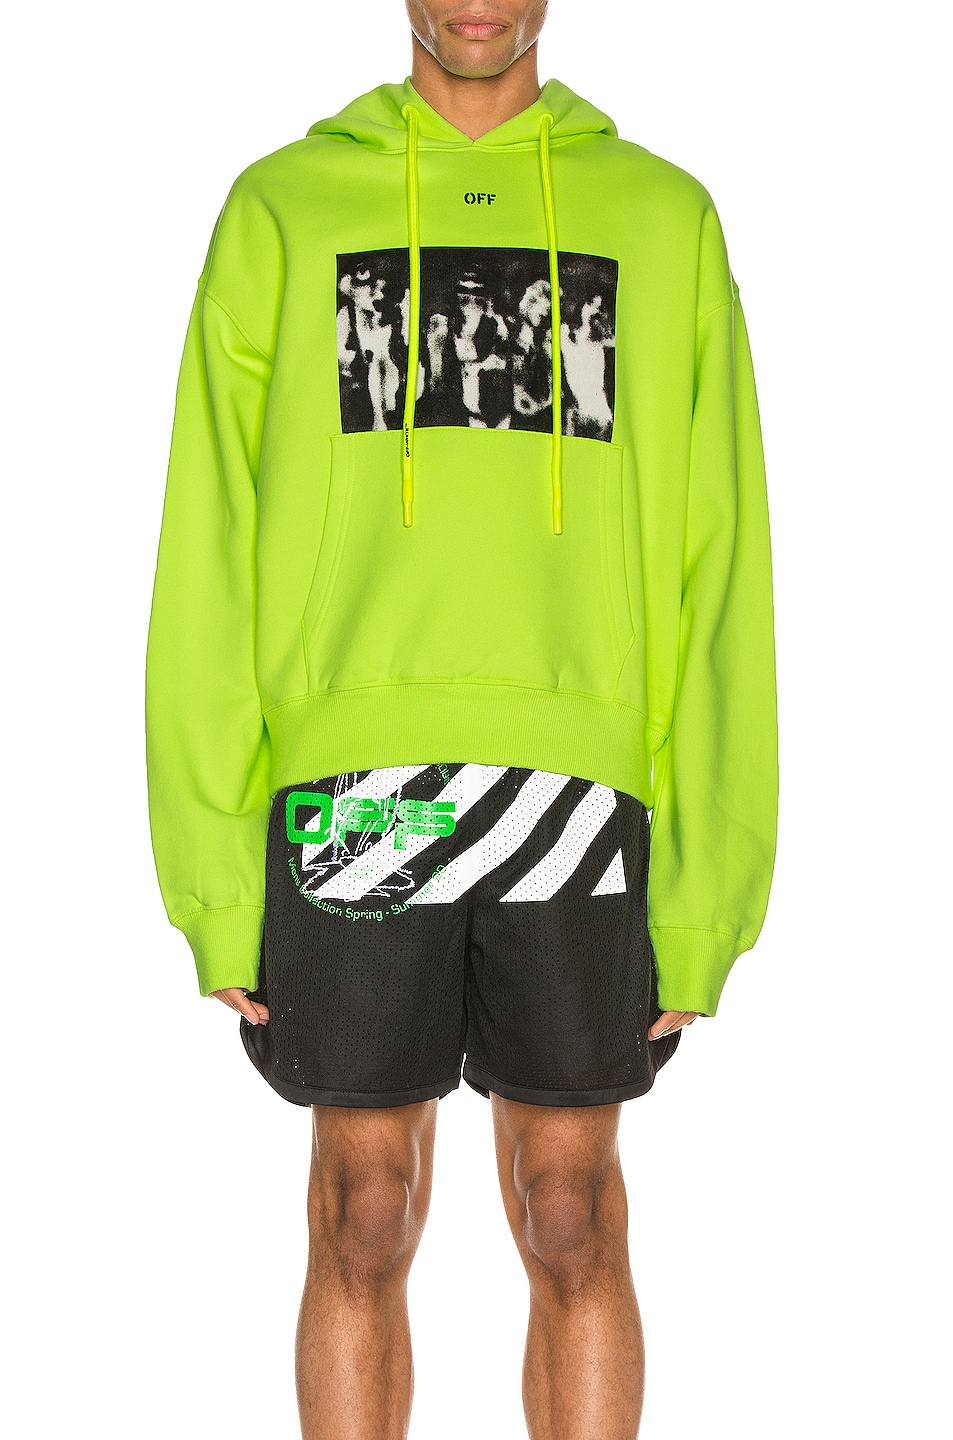 Image 1 of OFF-WHITE Spray Painting Over Hoodie in Fluo Yellow